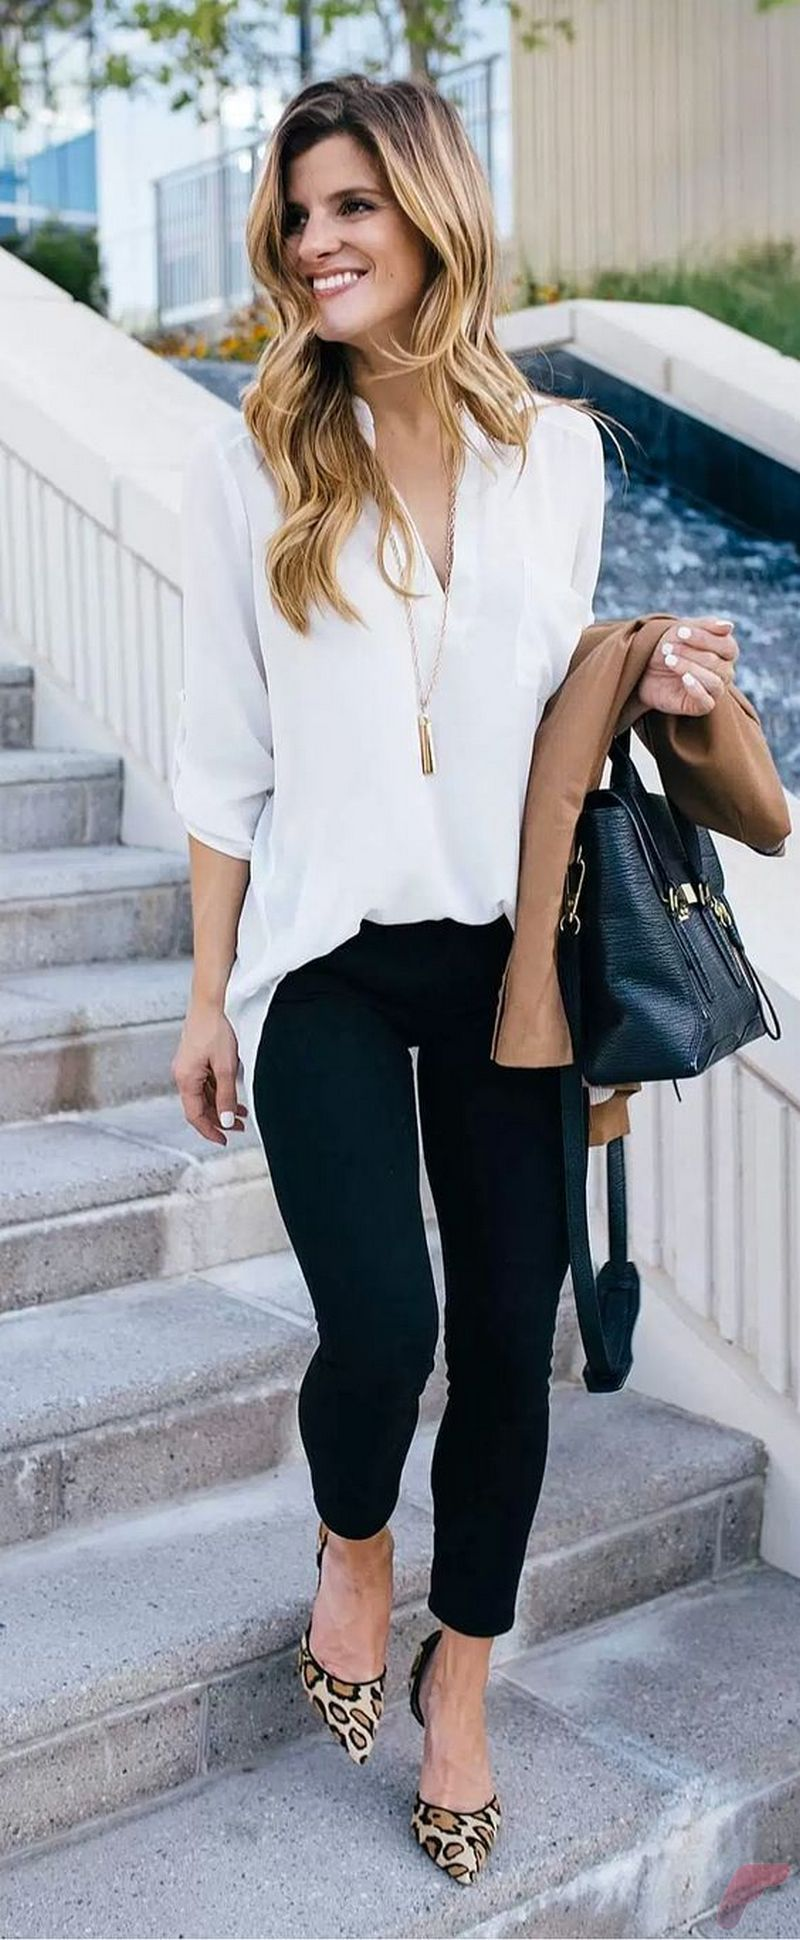 Women white shirt for work (292)